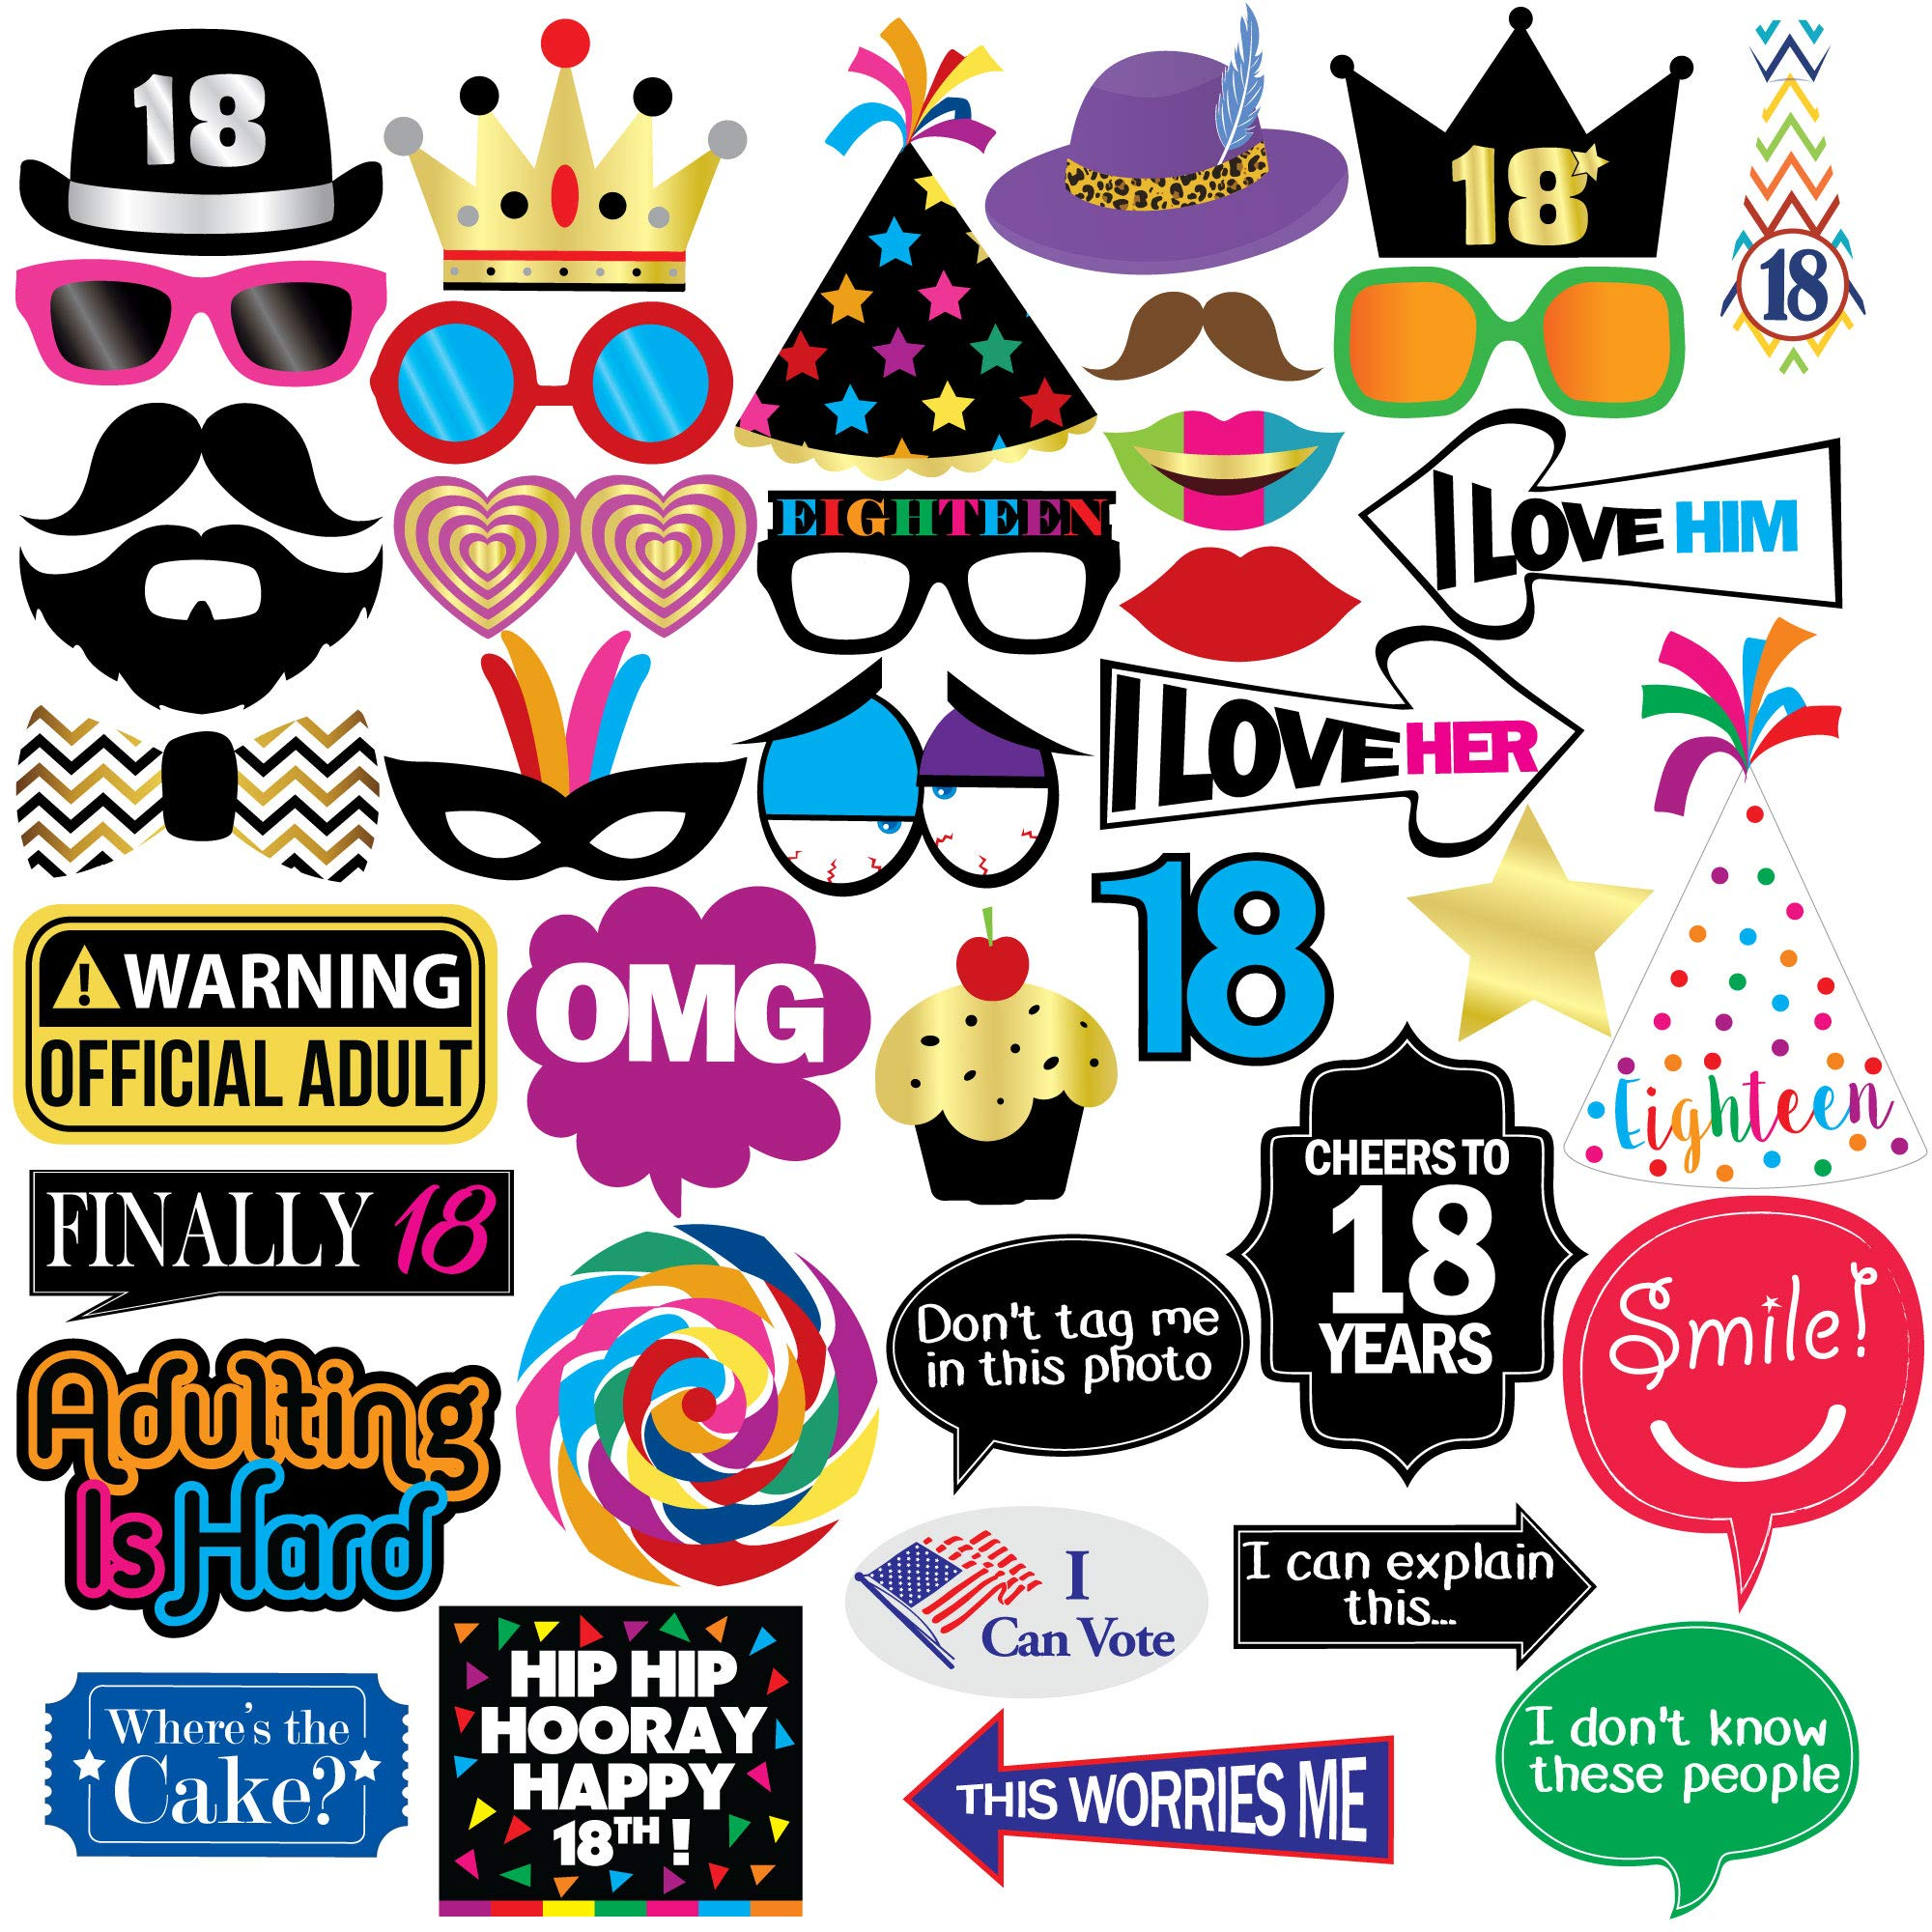 18th Birthday Photo Booth Party Props - 40 Pieces - Funny 18th Birthday Party Supplies, Decorations and Favors